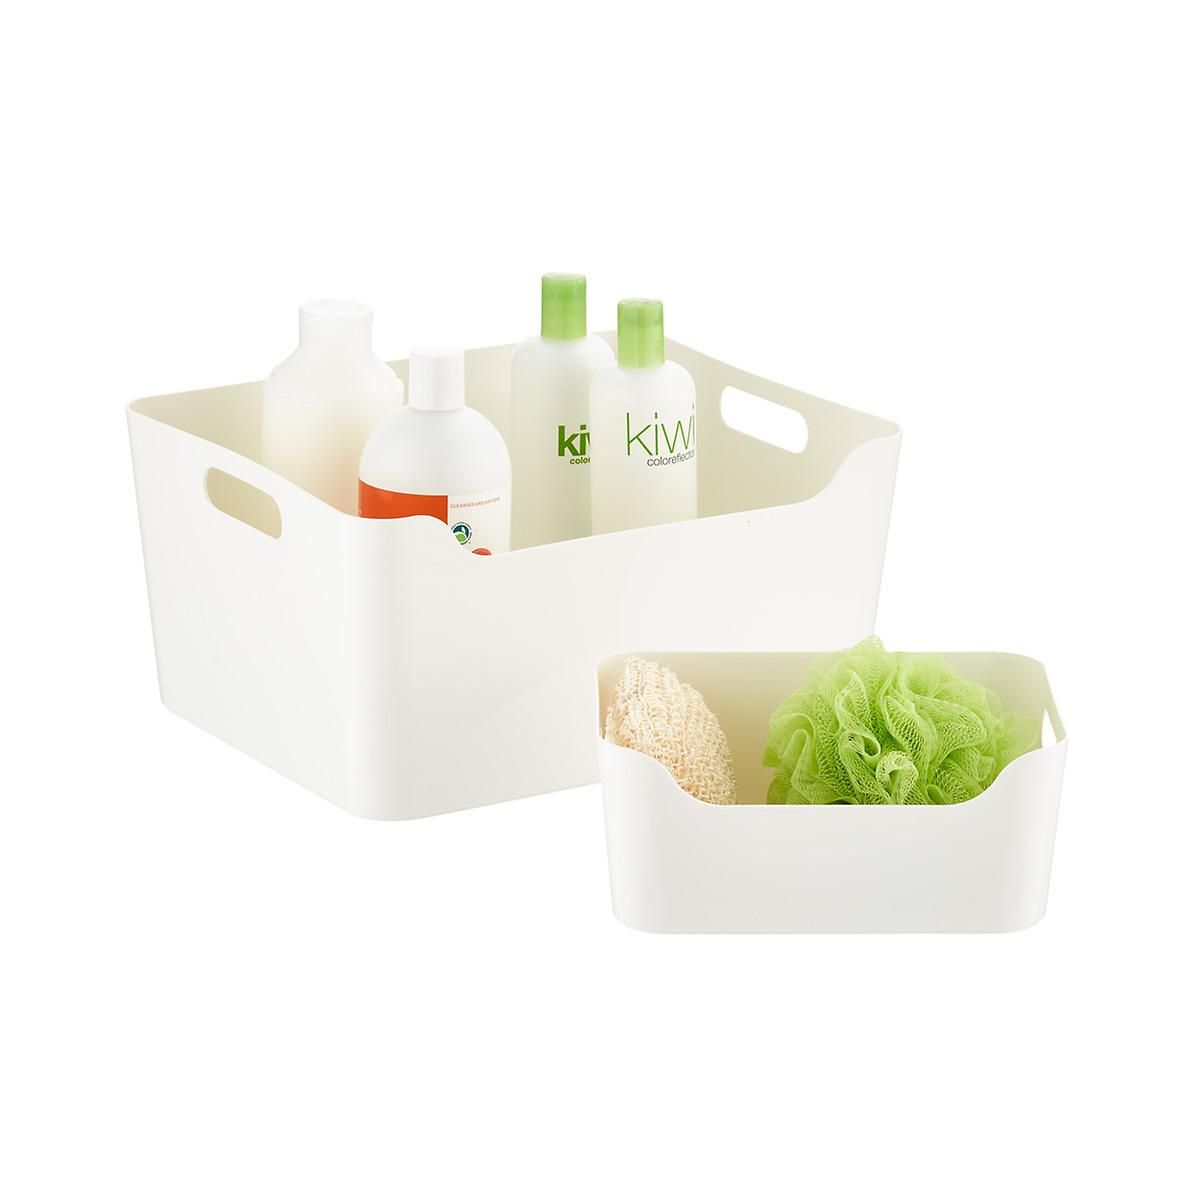 White Plastic Storage Bins With Handles Plastic Storage Storage Bins Plastic Storage Bins